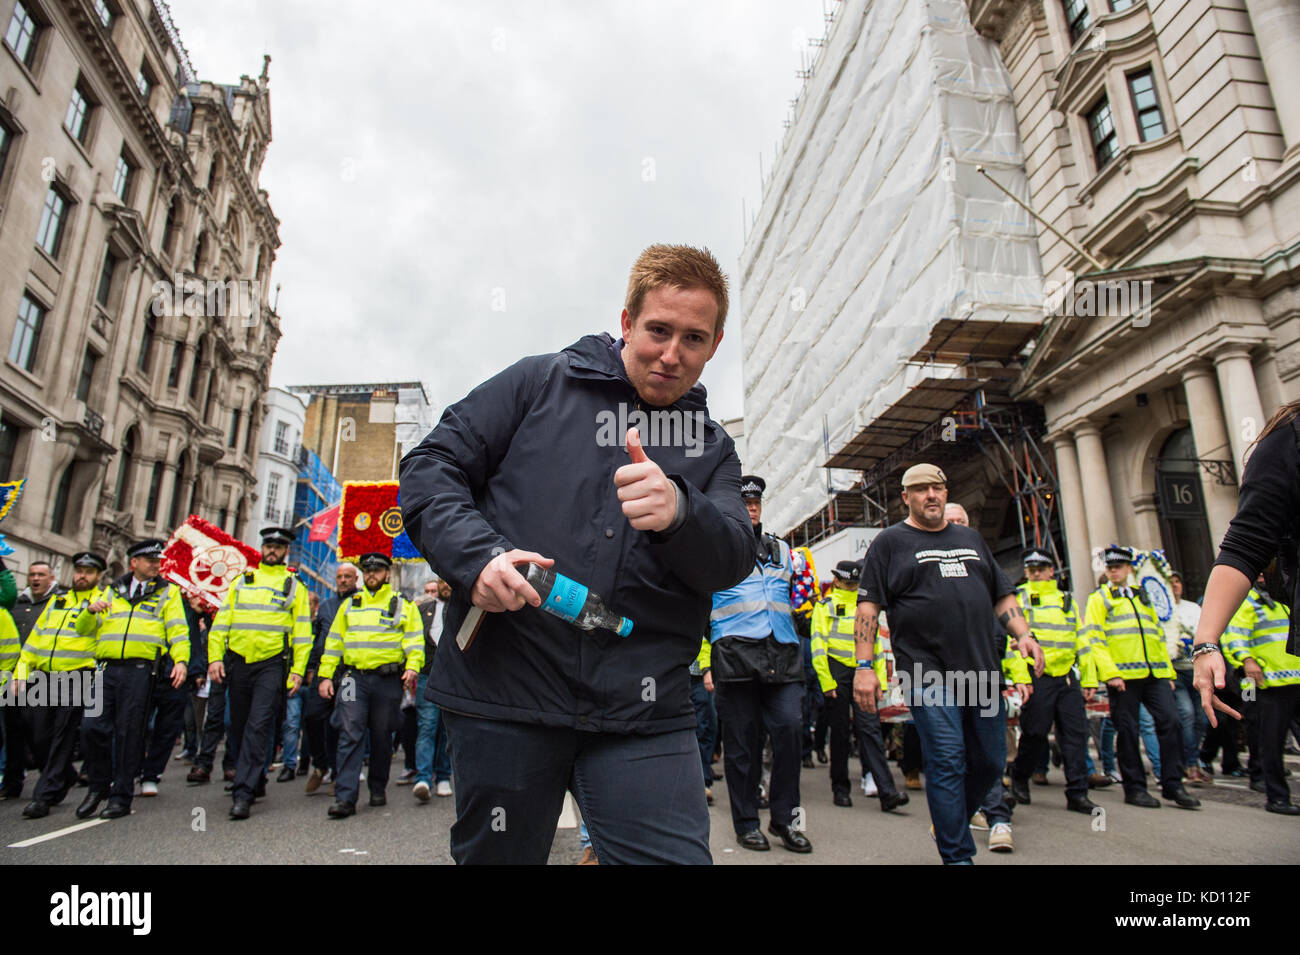 London, United Kingdom. 07th October 2017. Street movement group 'Football Lads Alliance' held a demonstration - Stock Image